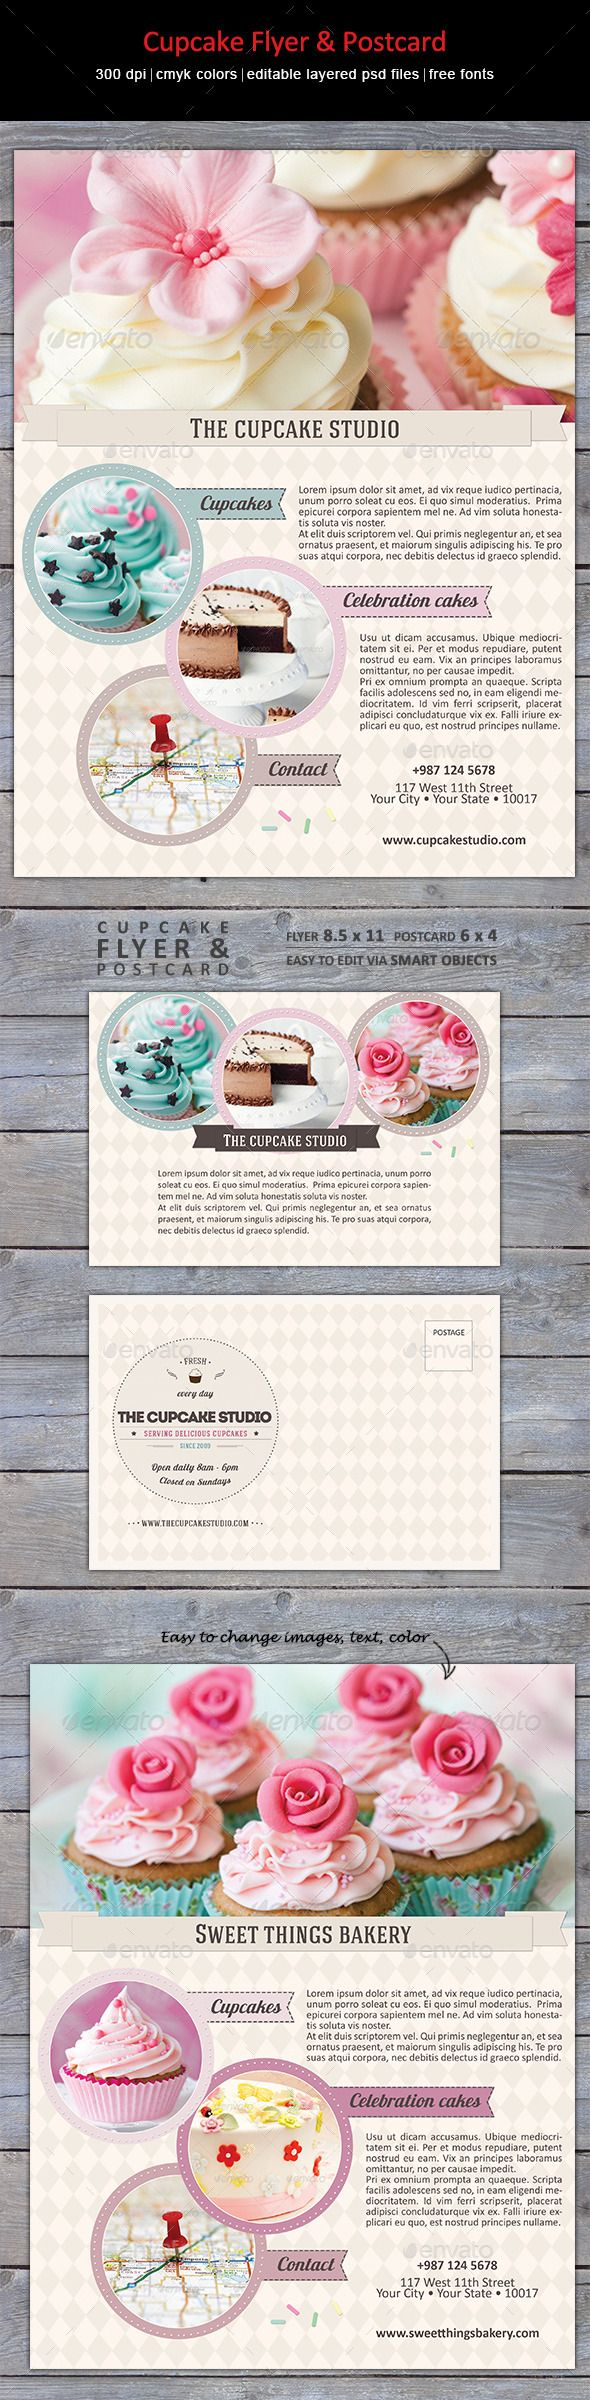 Creative, trendy flyer and postcard for cake, cupcake bakery or studio.